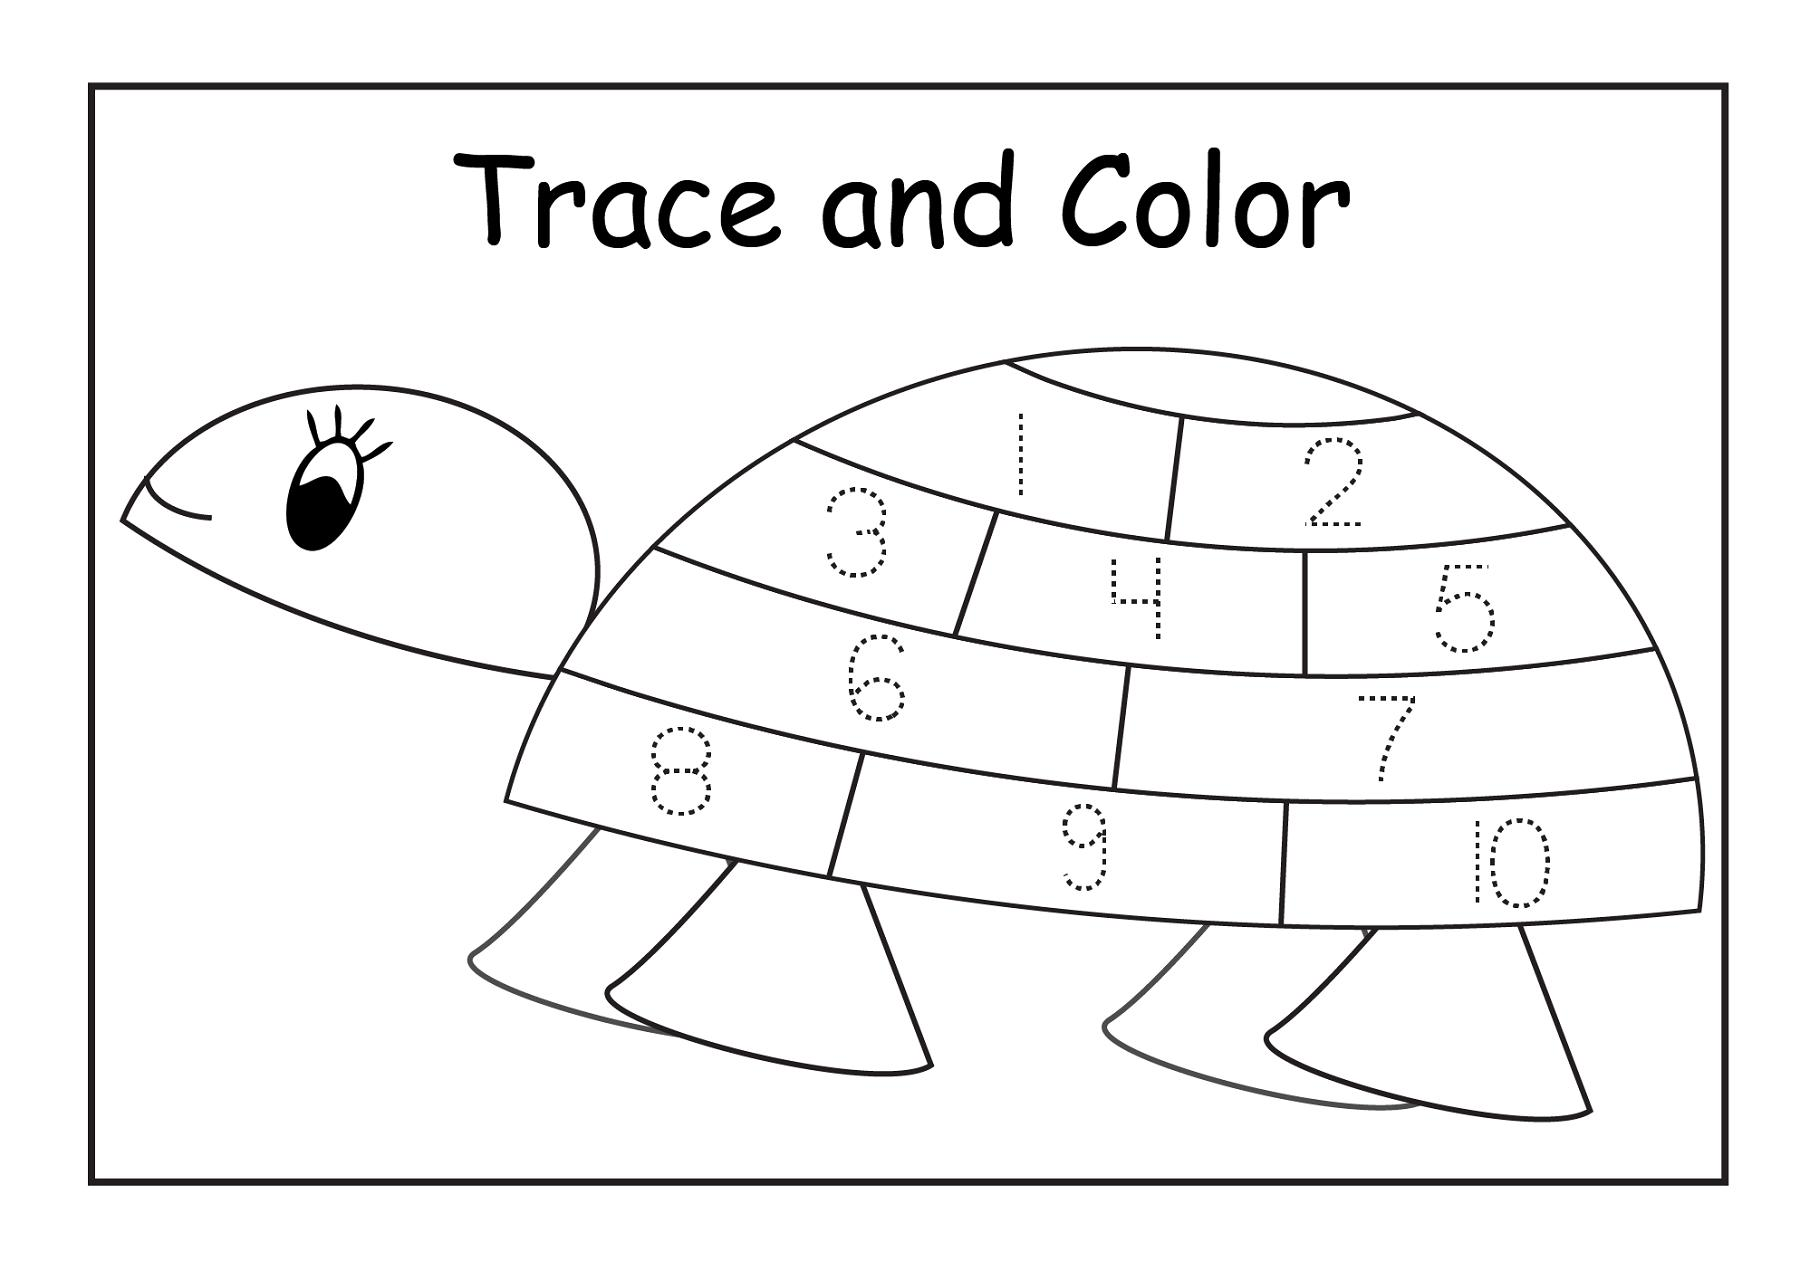 Preschool Number Tracing Worksheets 1-10